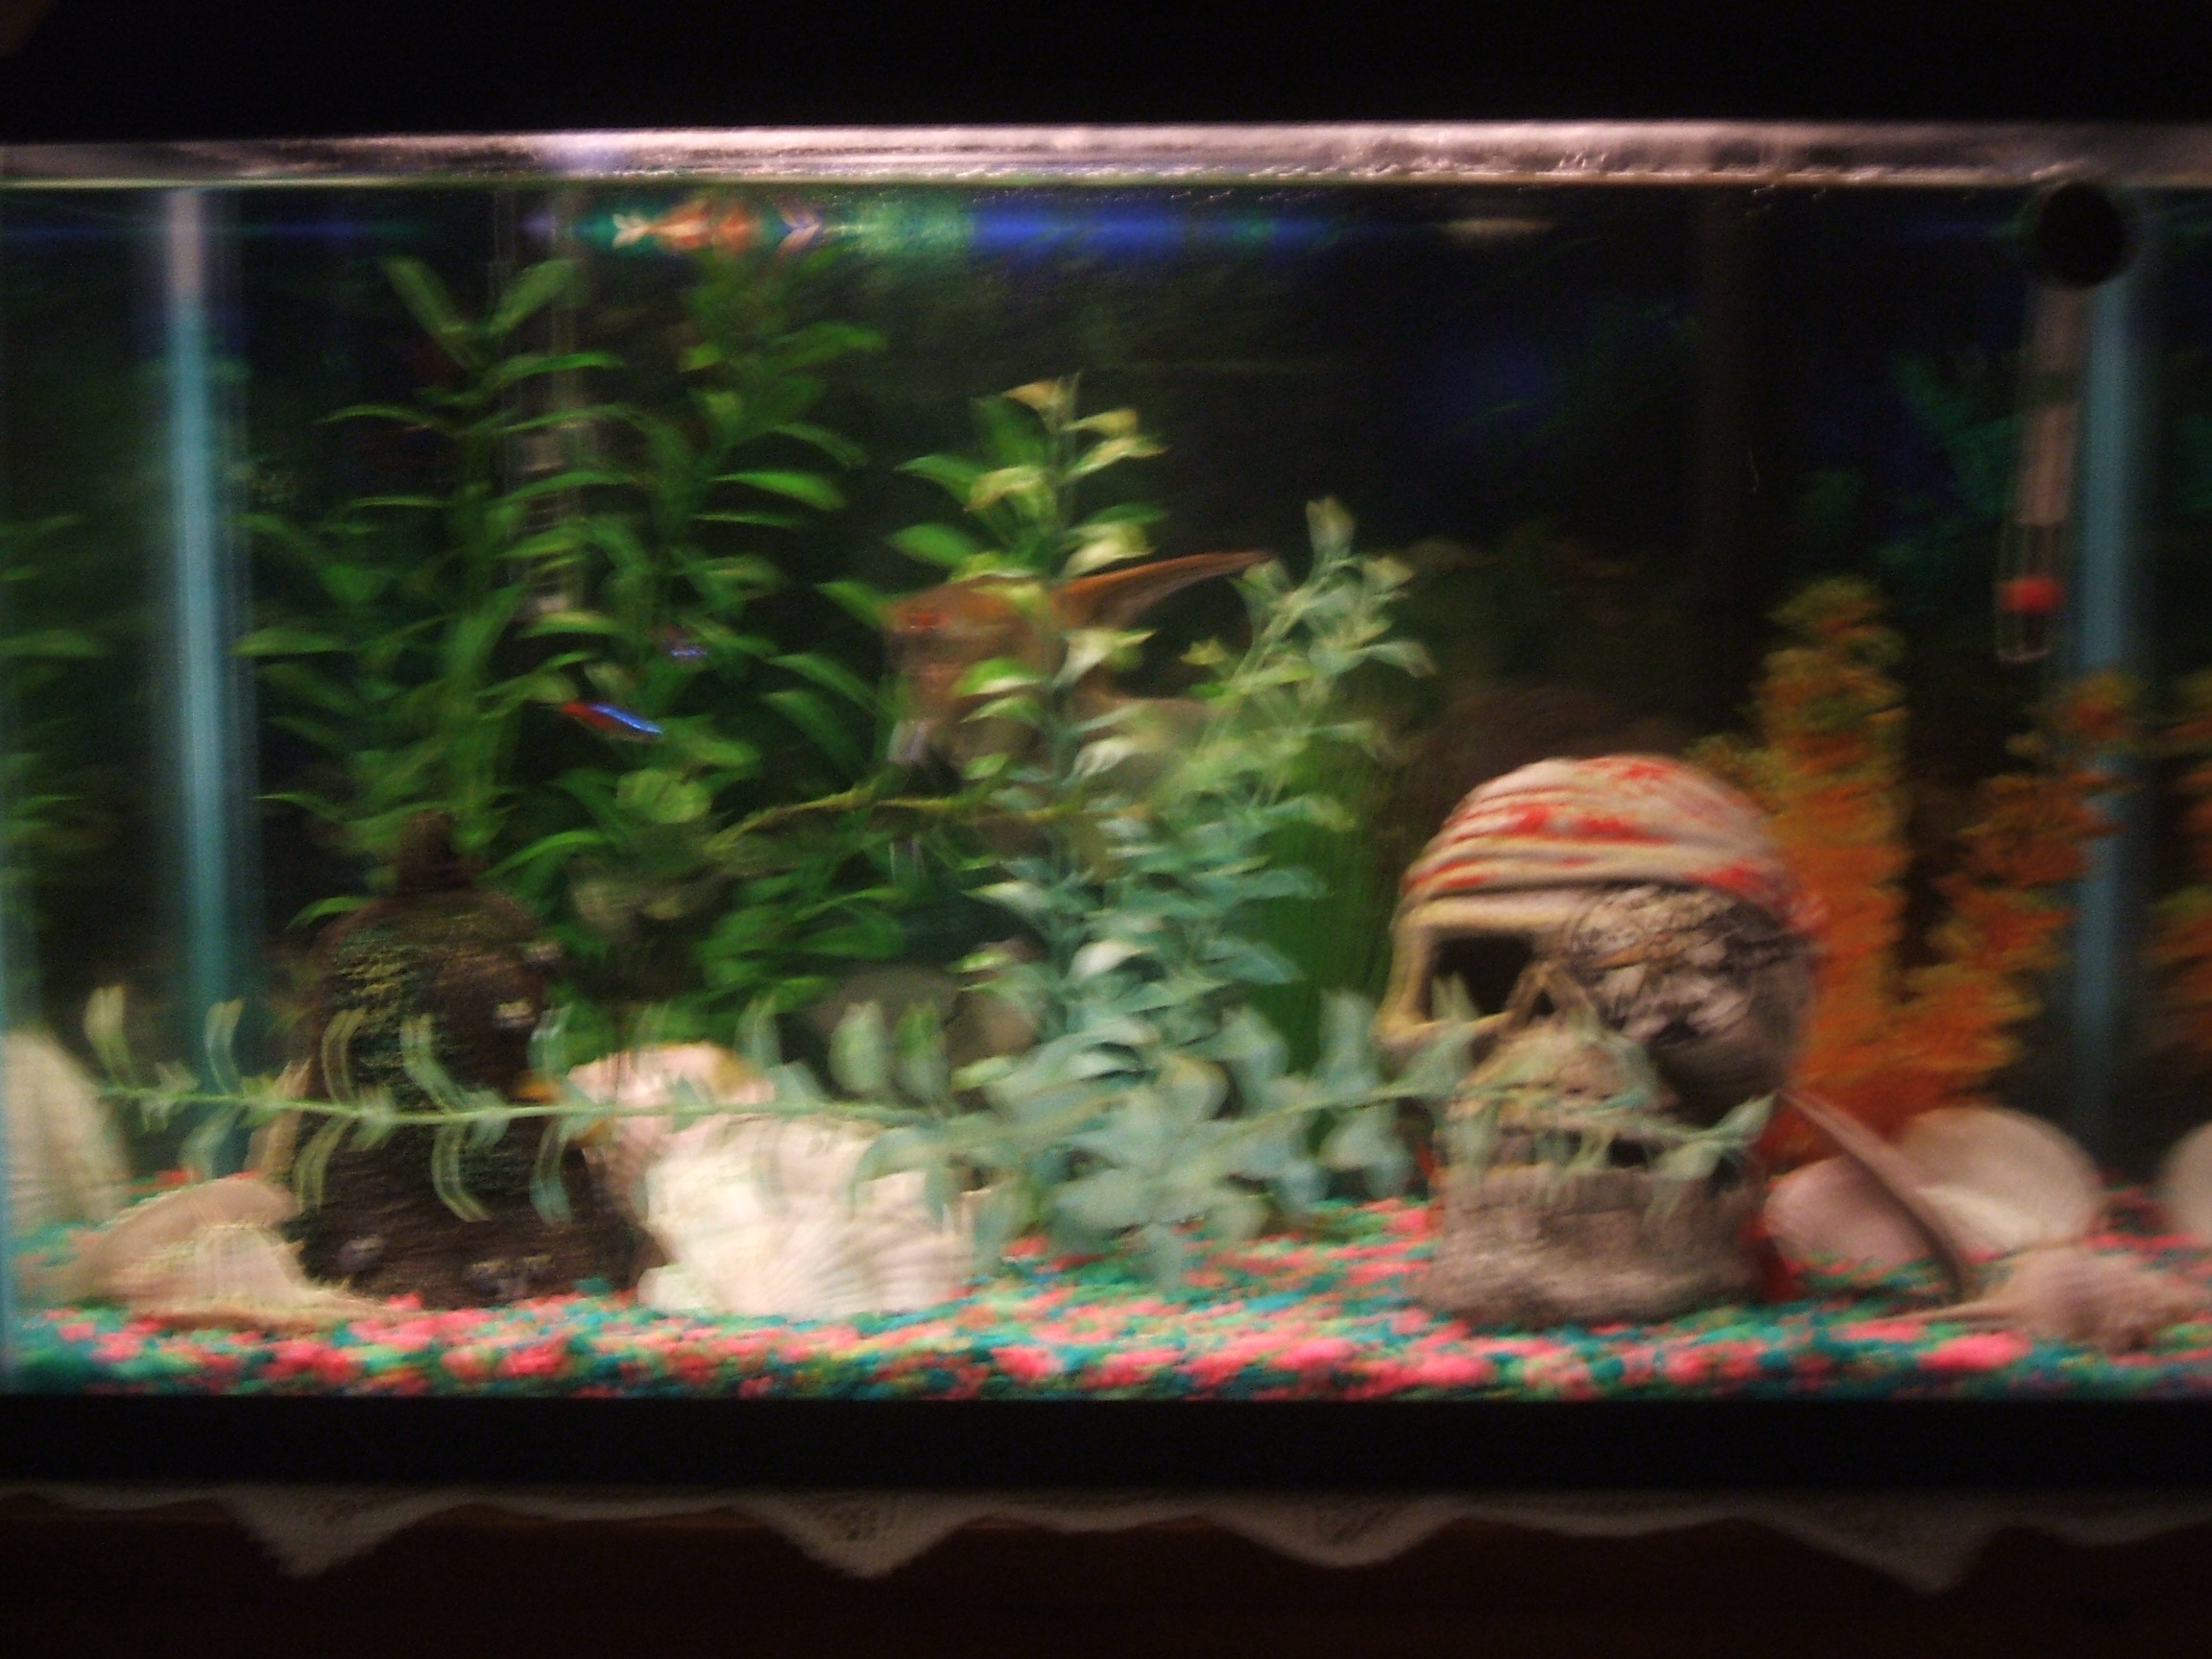 10 gallon fish tank examples tank examples for Fish for a 10 gallon tank